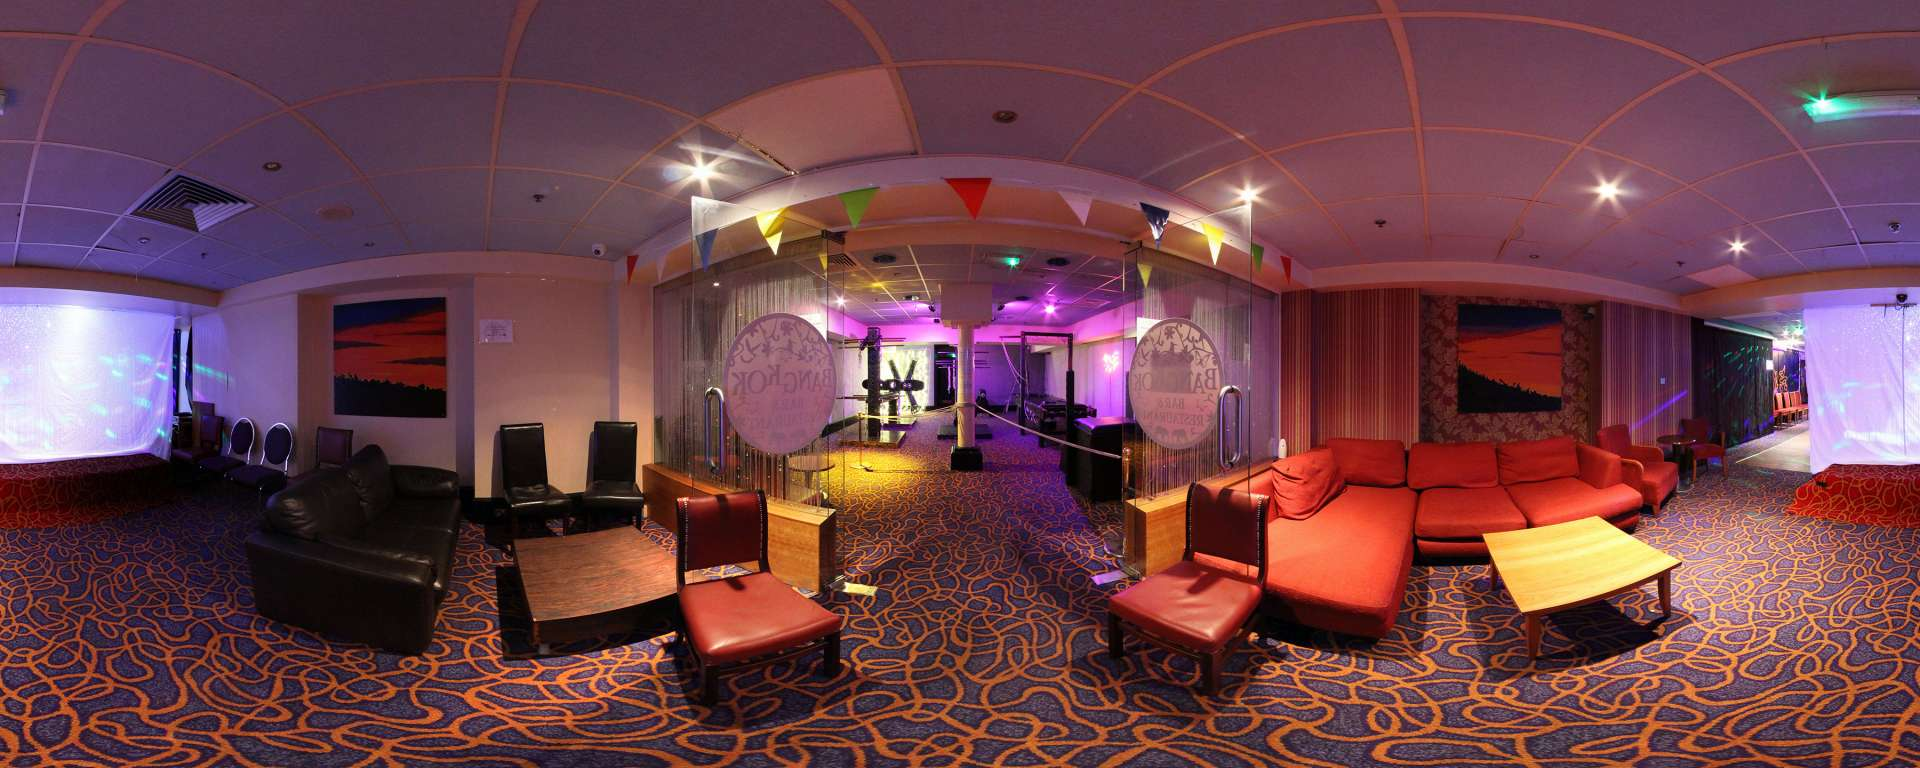 Club Lash nightclub Virtual tour